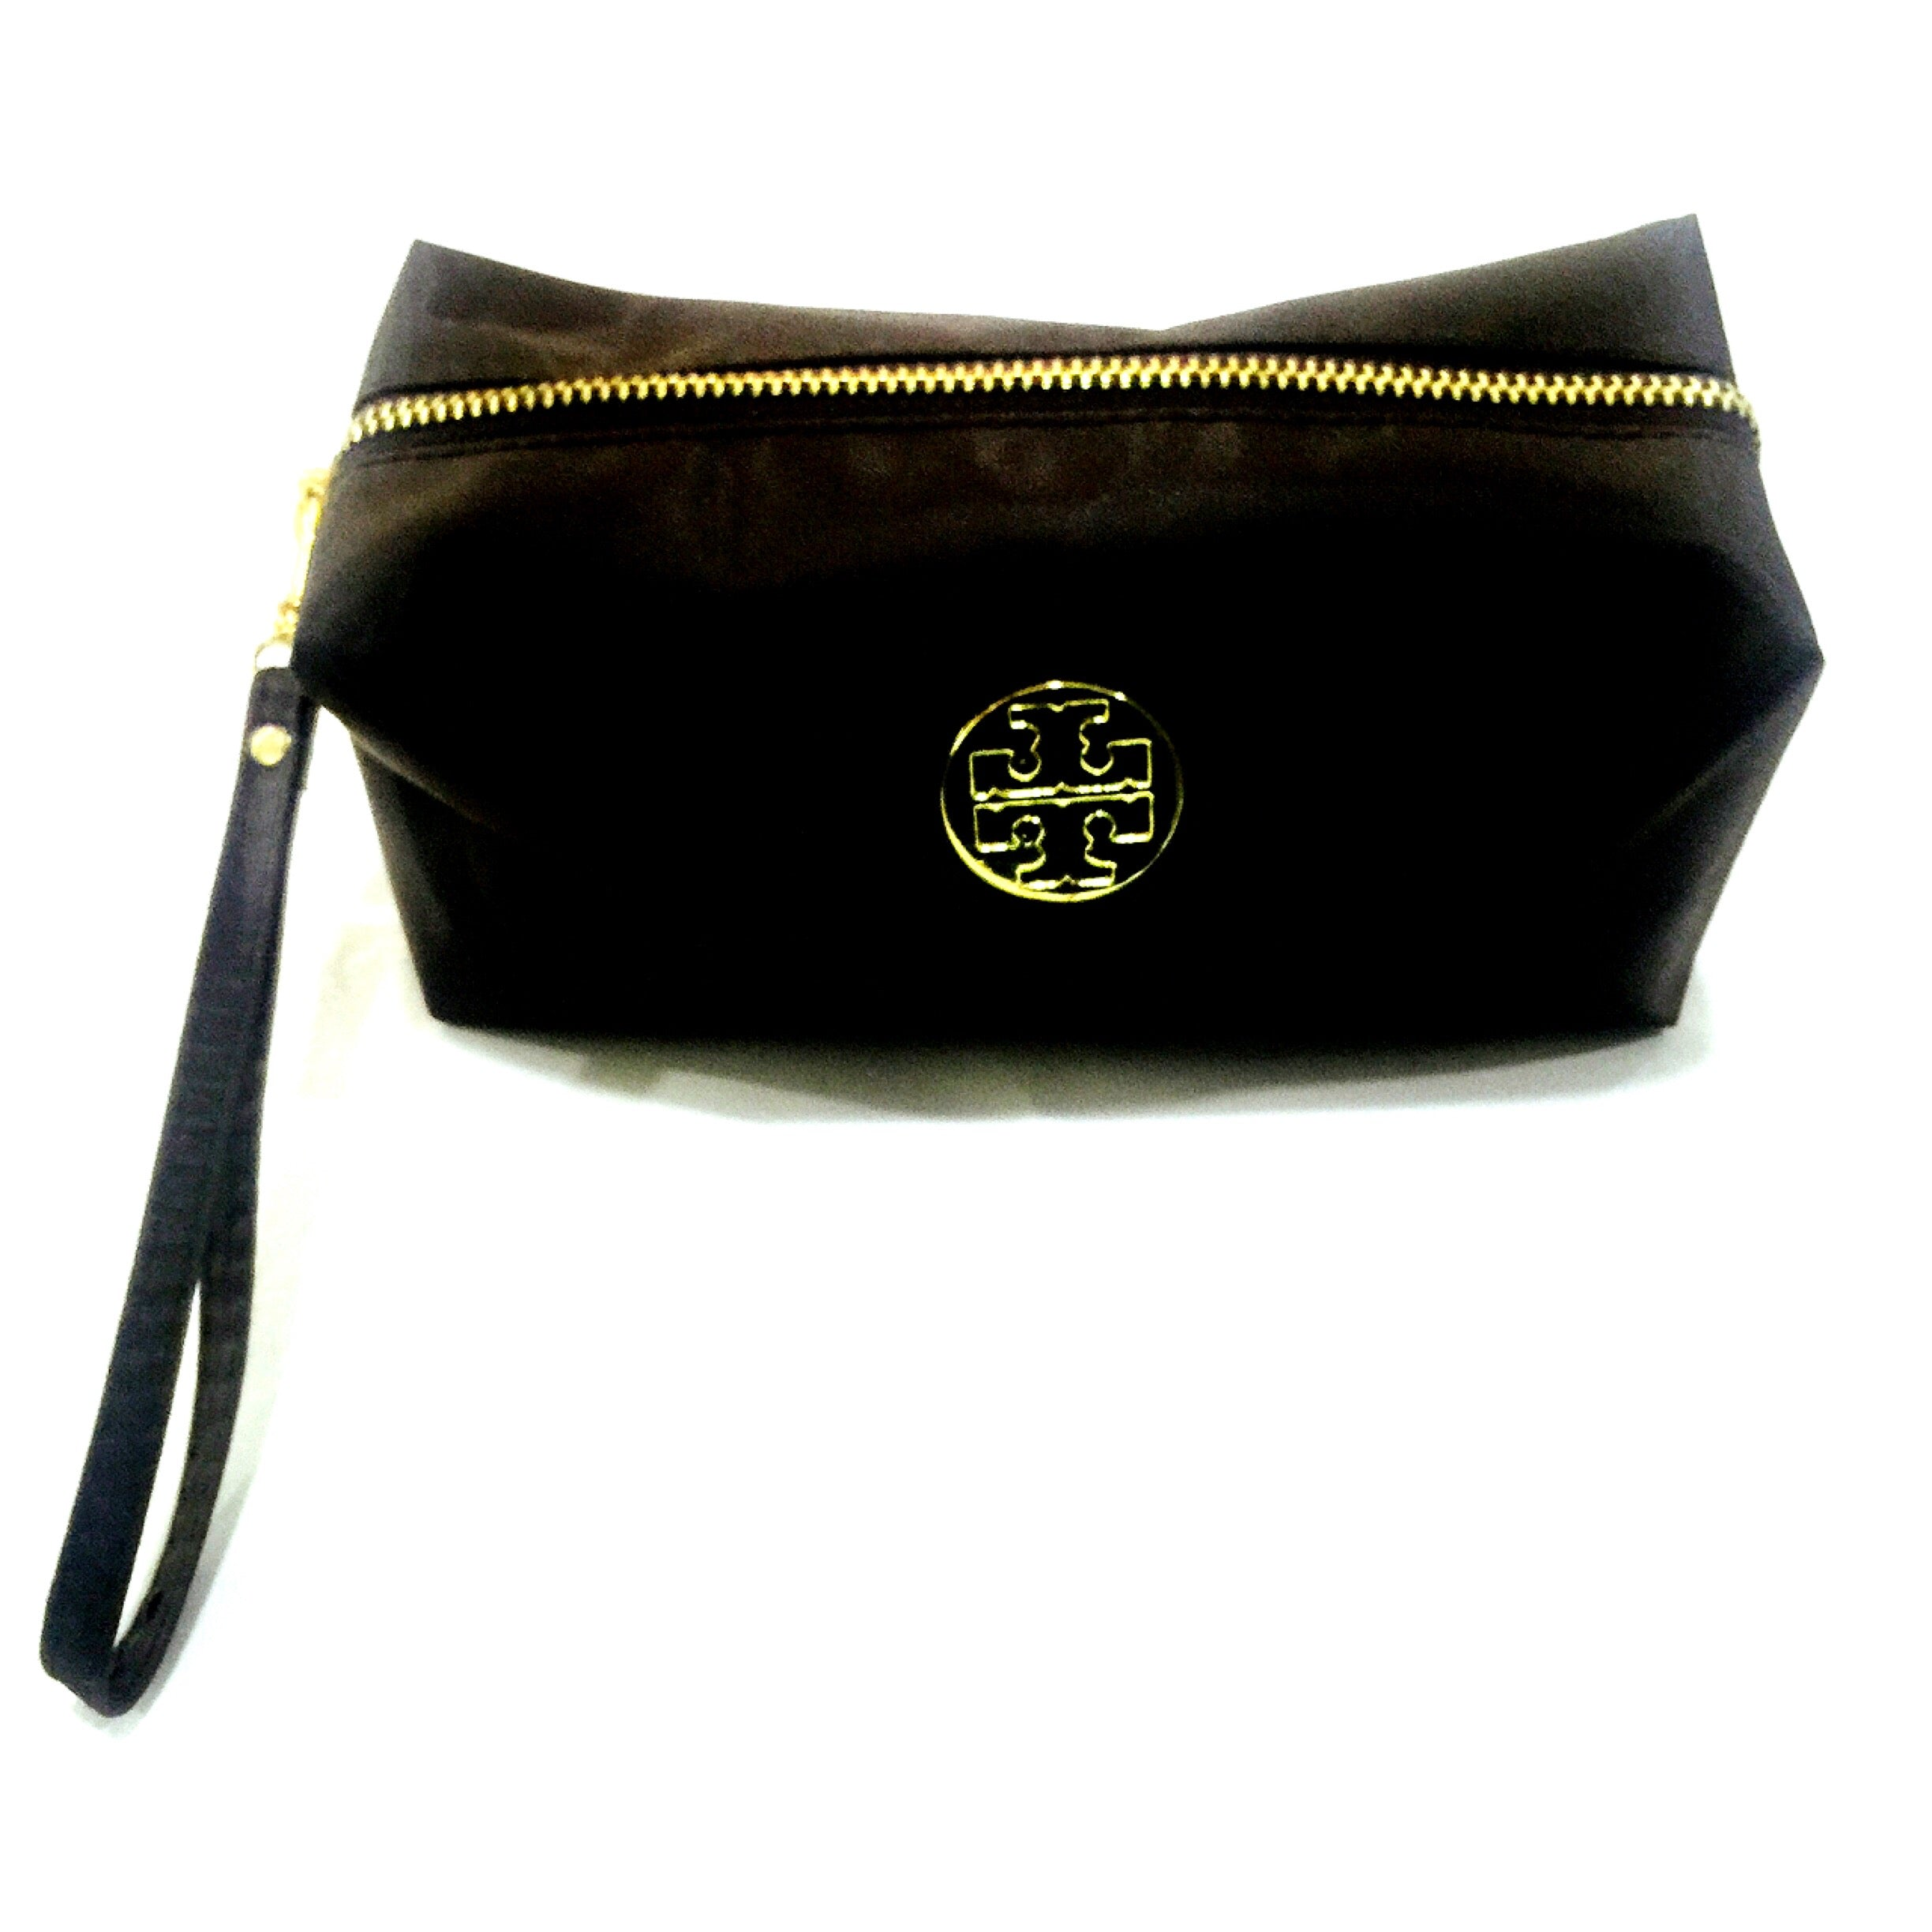 Jual Cosmetic Pouch - Tory Burch